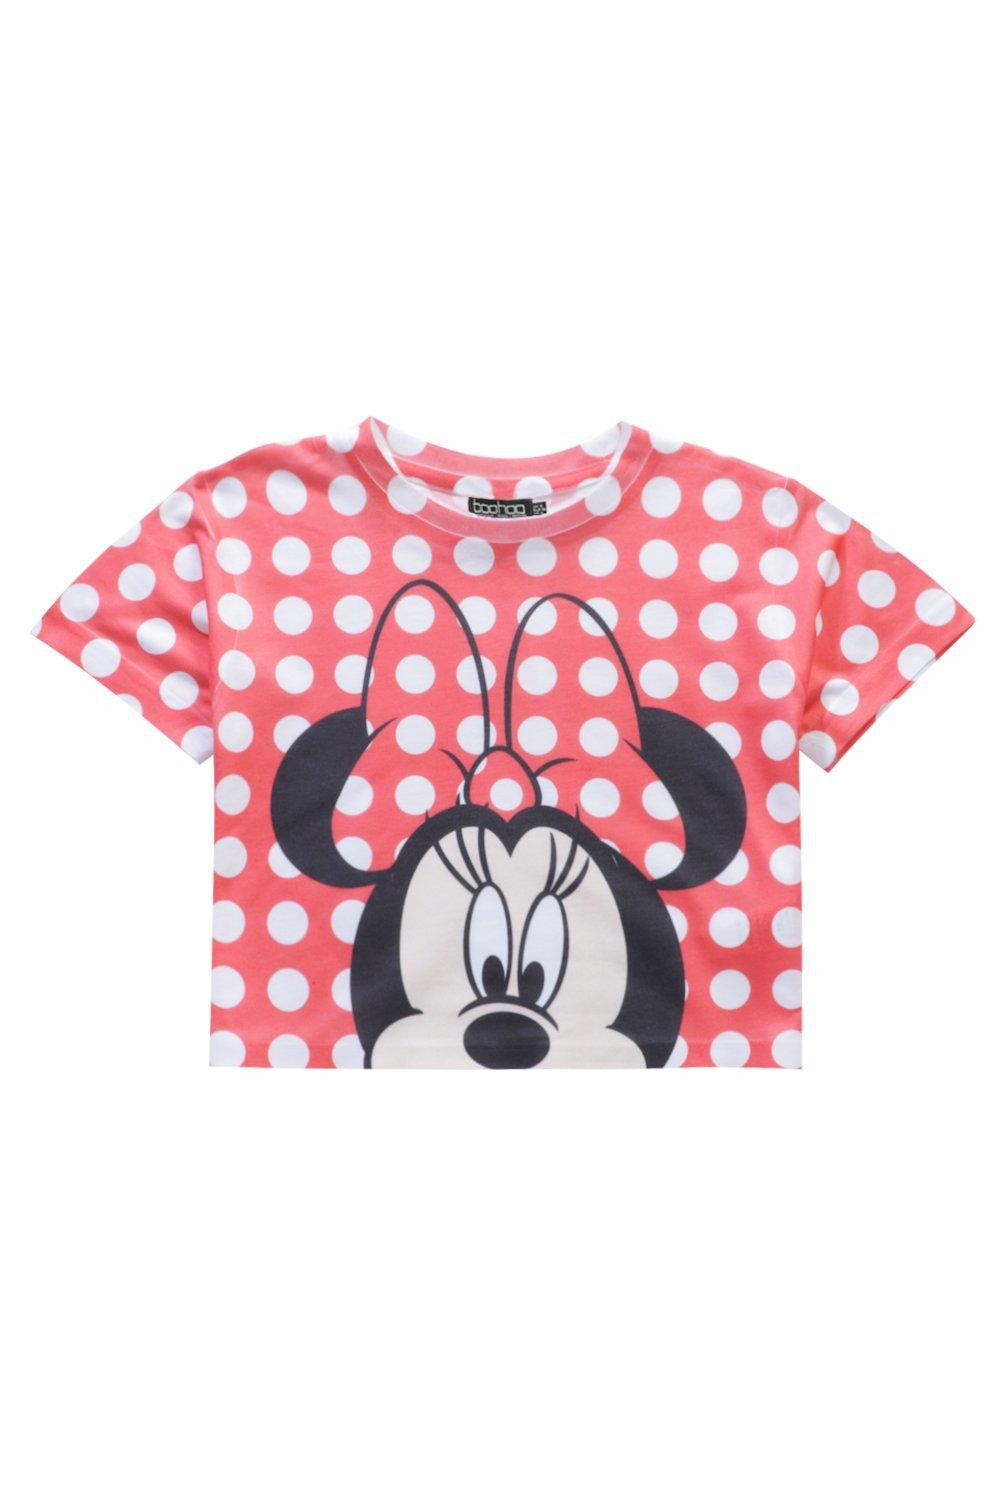 0d8e7ed96 Lyst - Boohoo Girls Minnie Dots Cropped Tee in Red